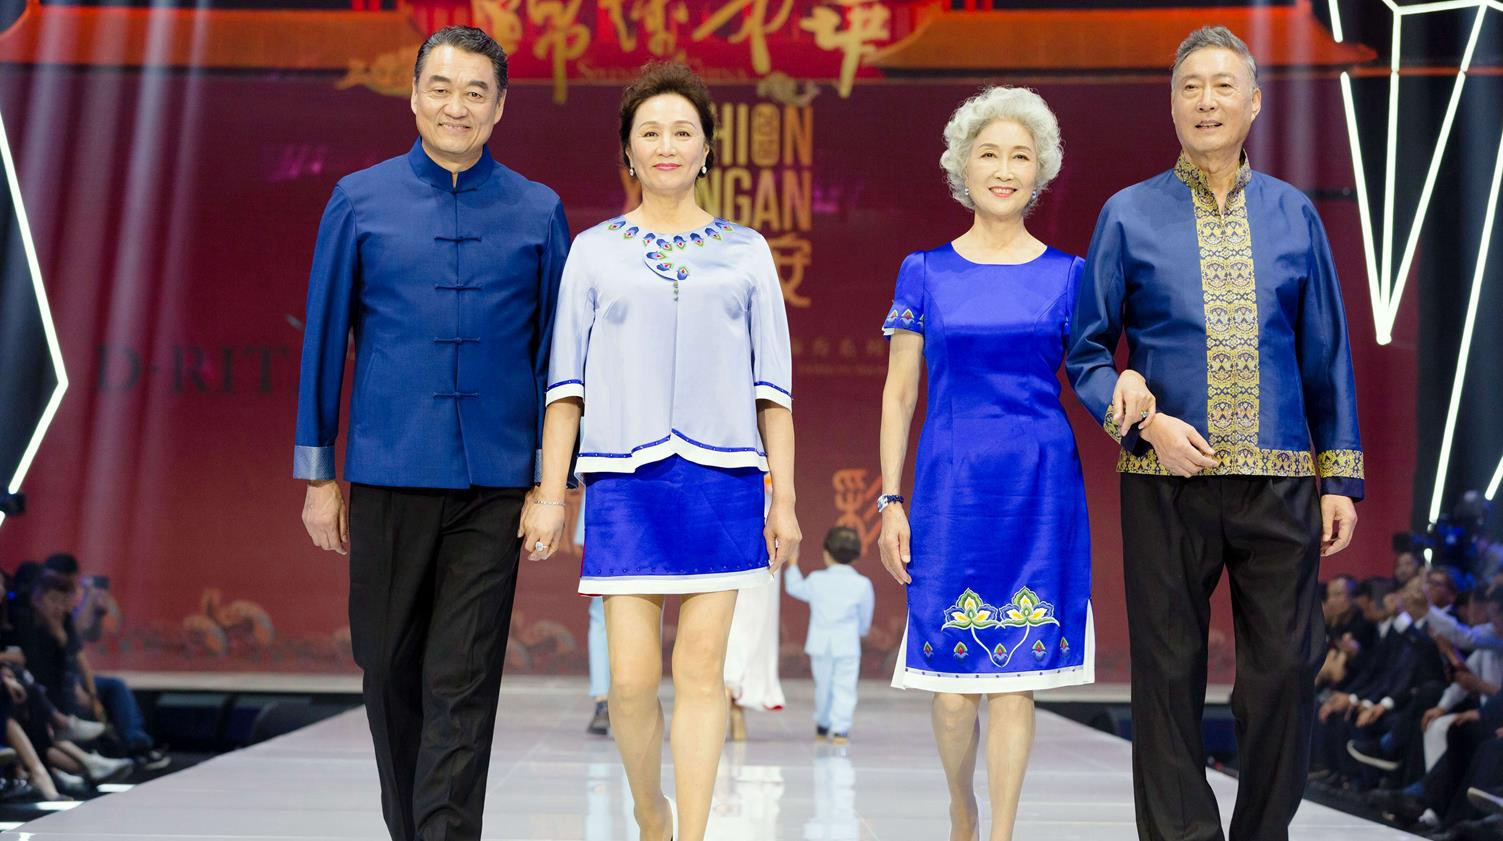 Chinese elderly shine with their own style